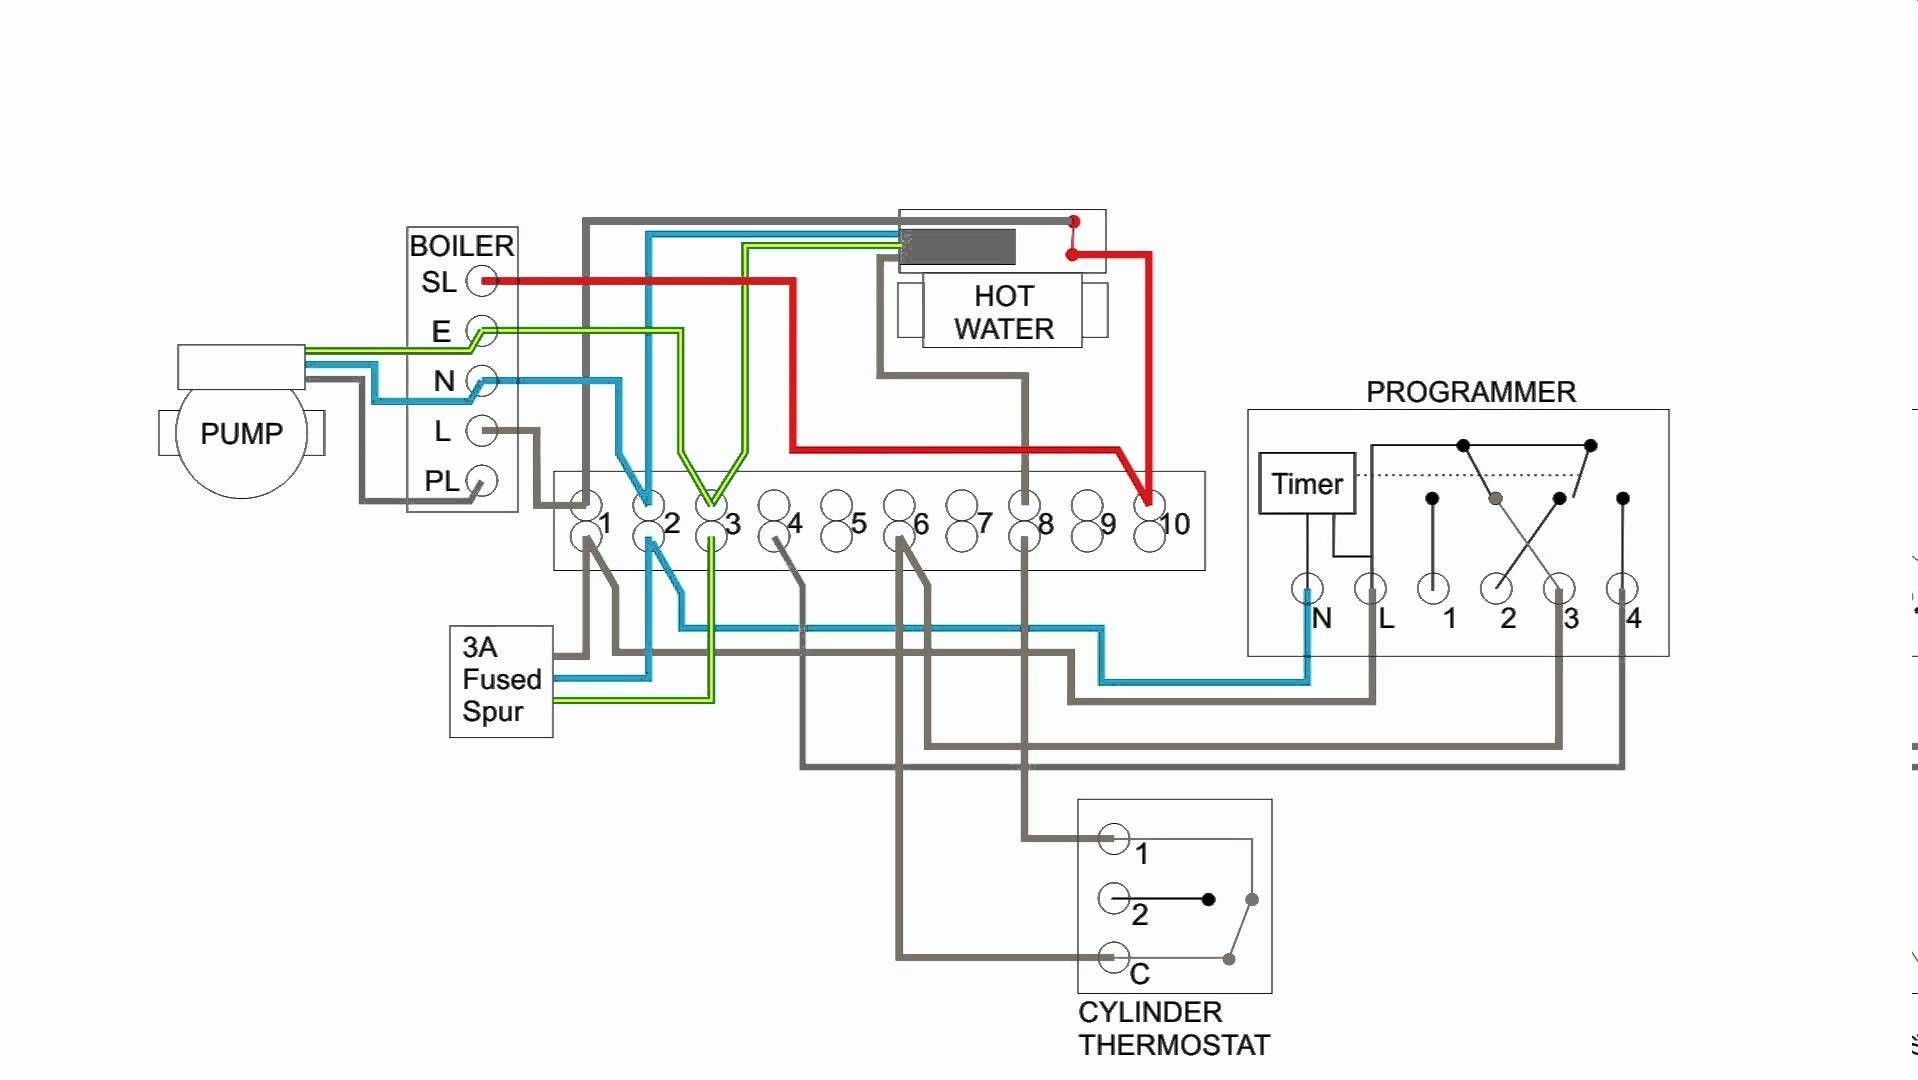 New Wiring Diagram For Central Heating Programmer Con Imagenes